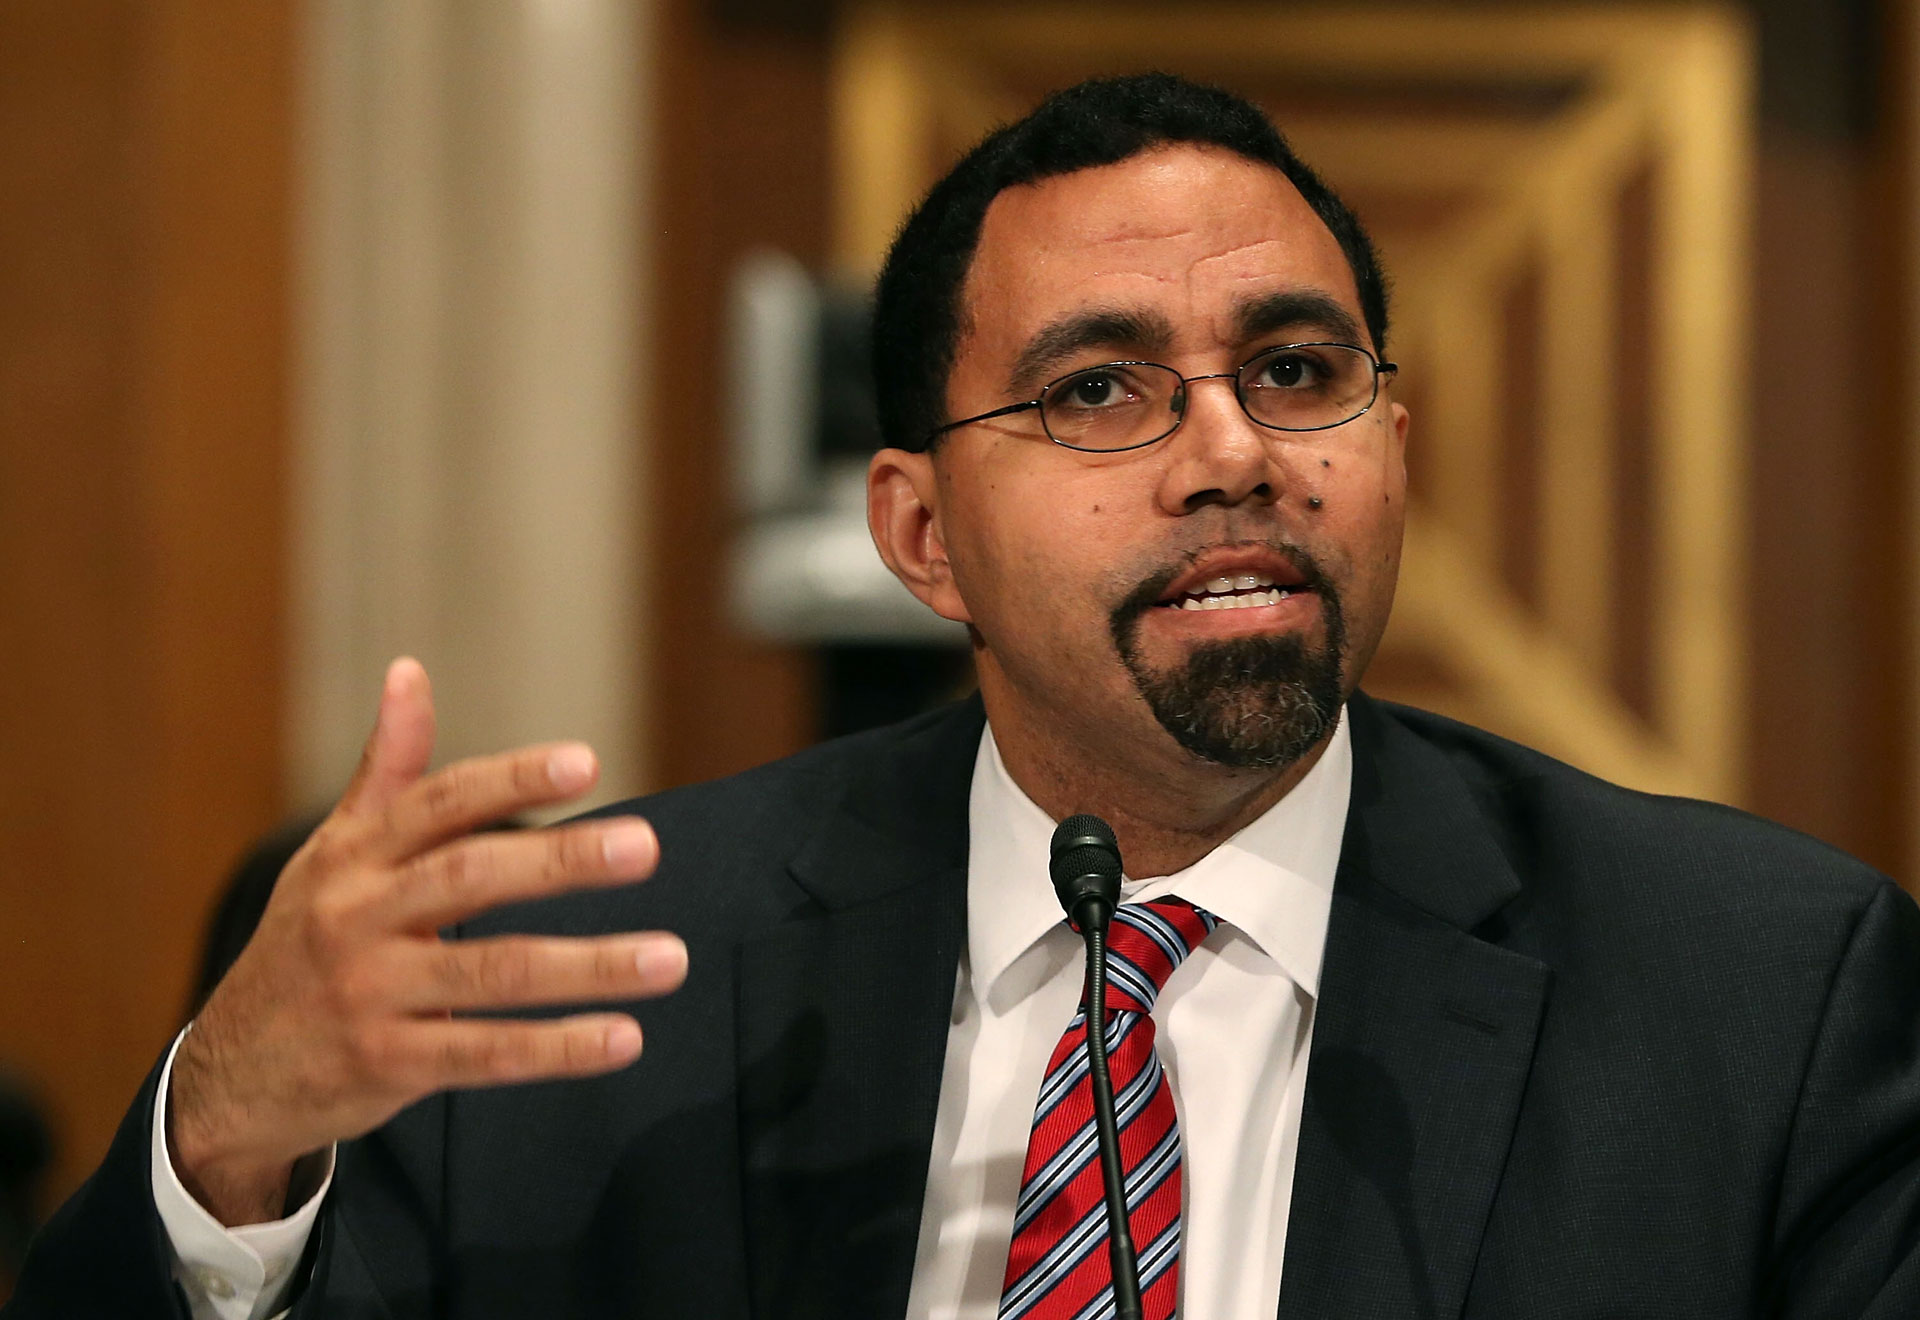 """""""Corinthian was more worried about profits than about students' lives,"""" said U.S. Education Secretary John King."""